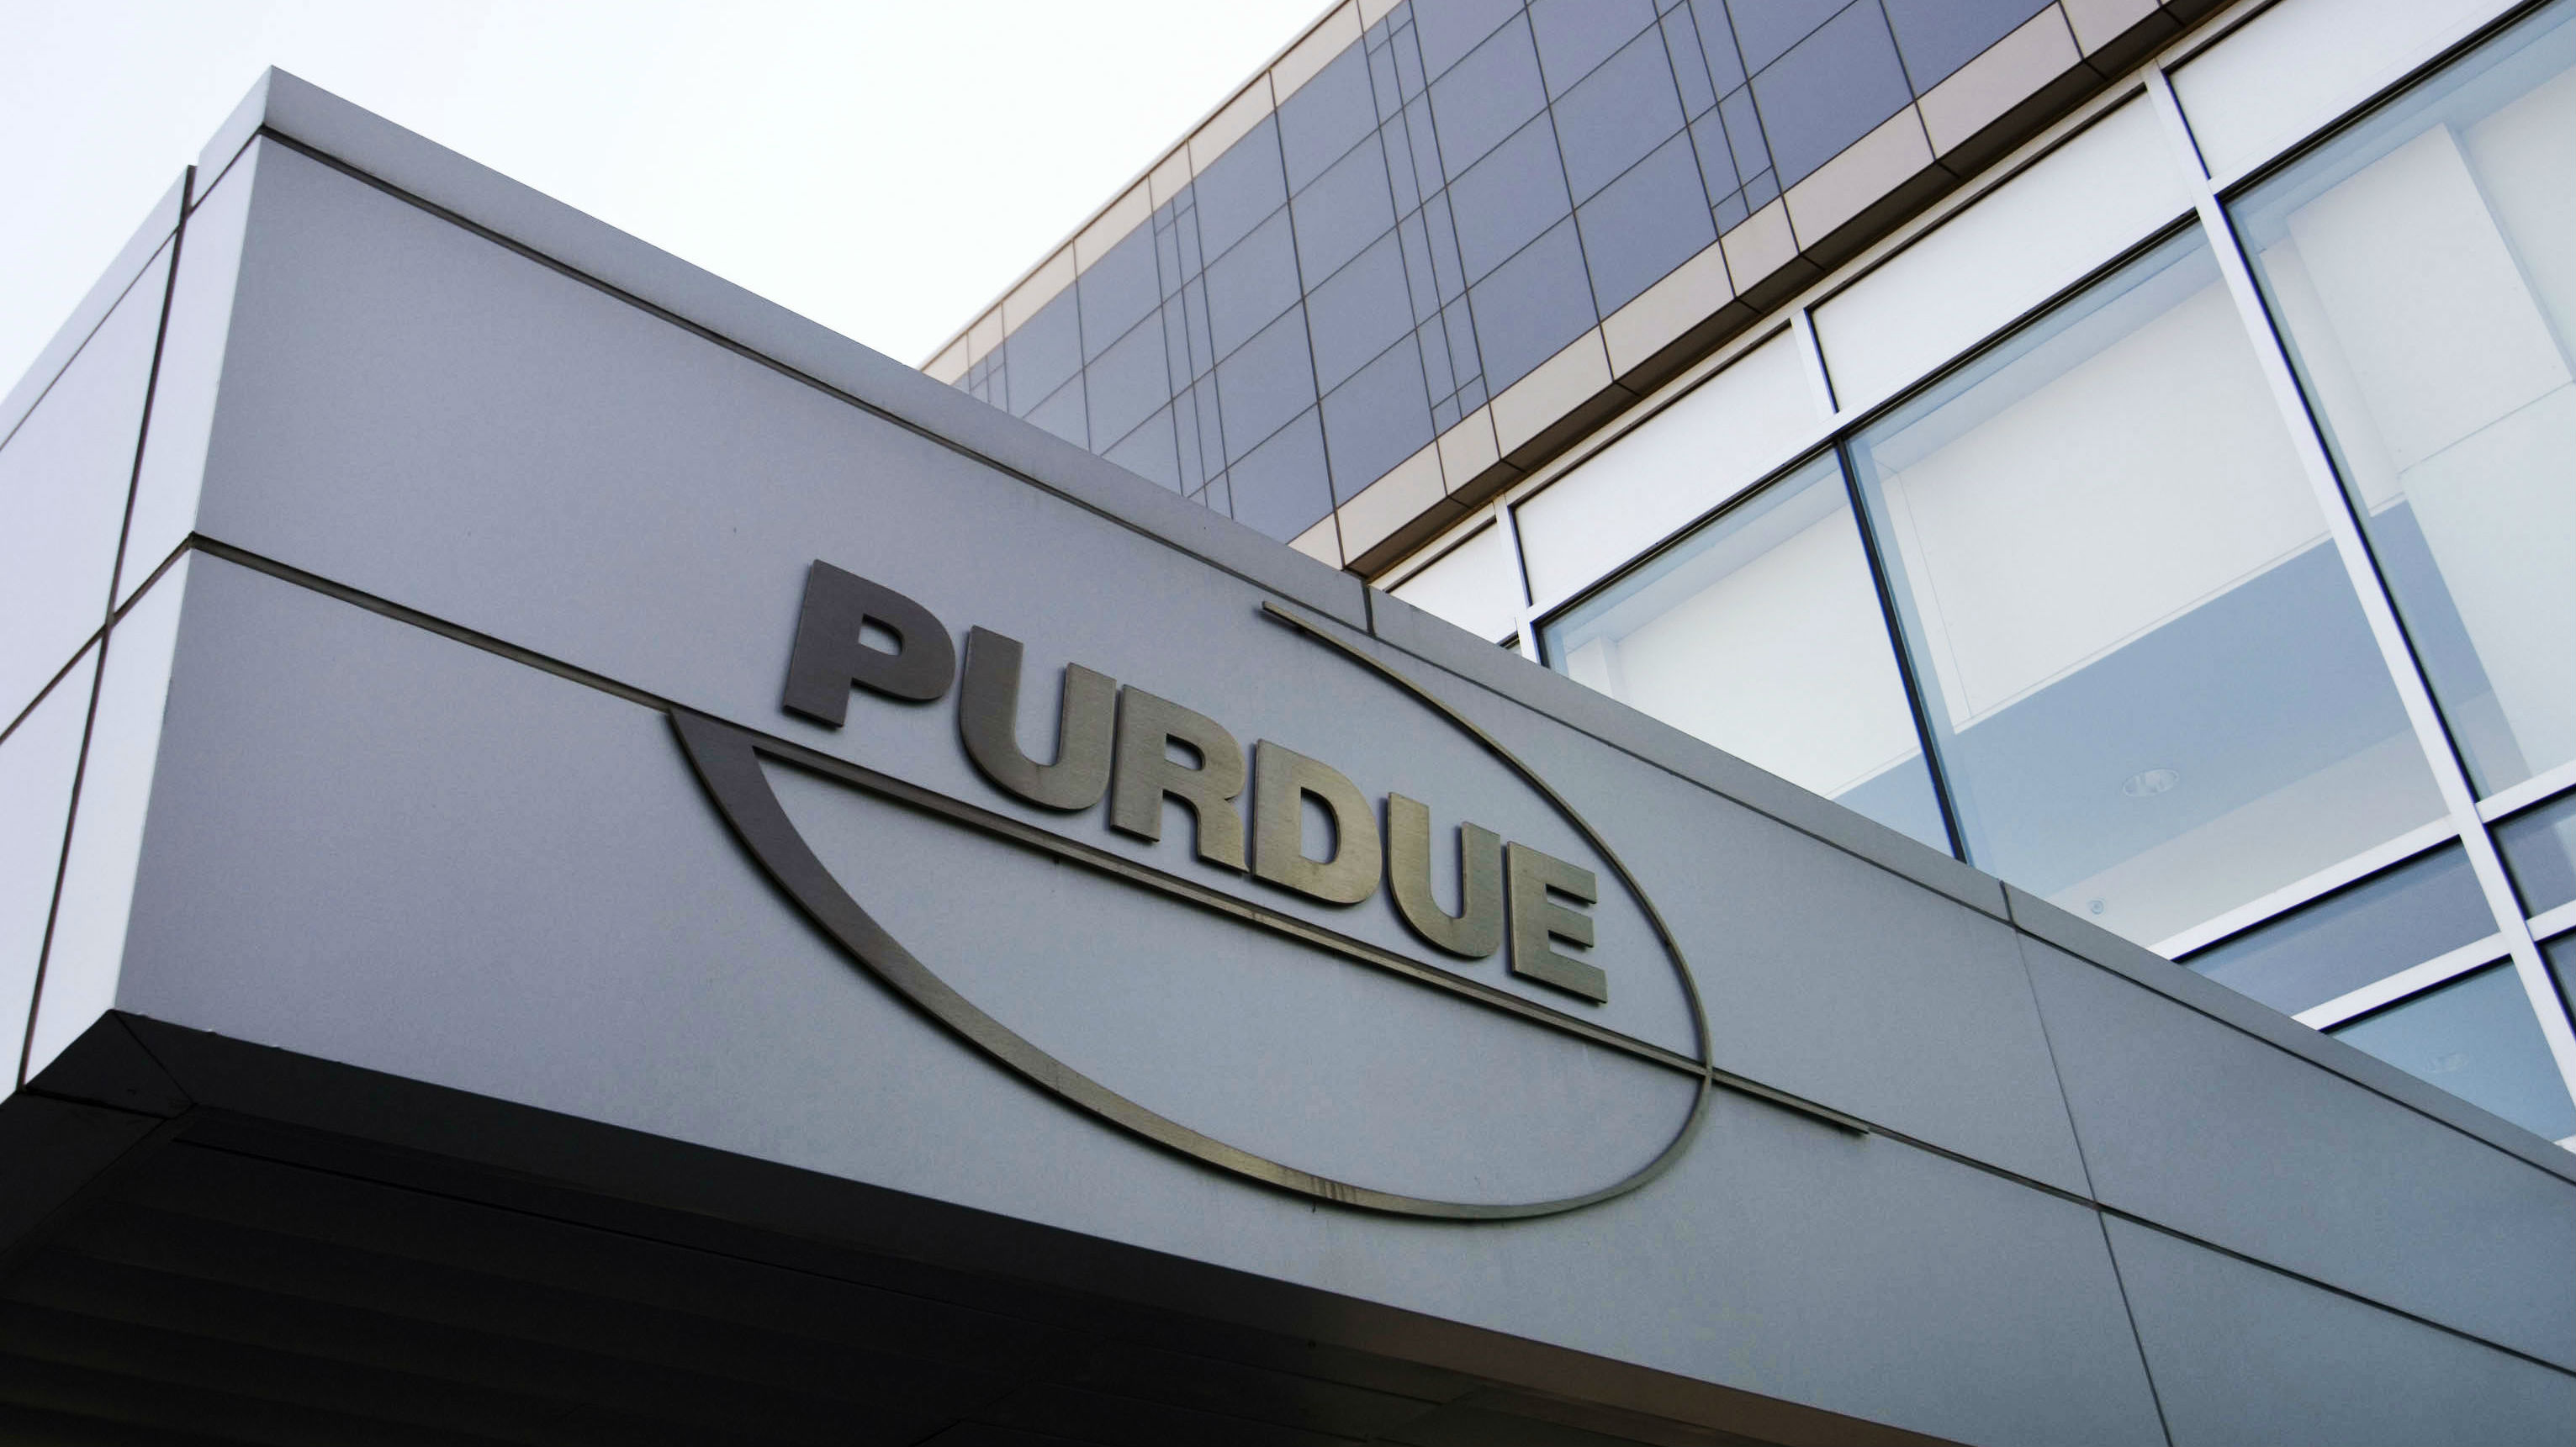 This Tuesday, May 8, 2007 file photo shows the Purdue Pharma offices in Stamford, Conn. In 2007, the company pleaded guilty and agreed to pay more than $600 million in fines for misleading the public about the risks of OxyContin. But the drug continued to rack up blockbuster sales.